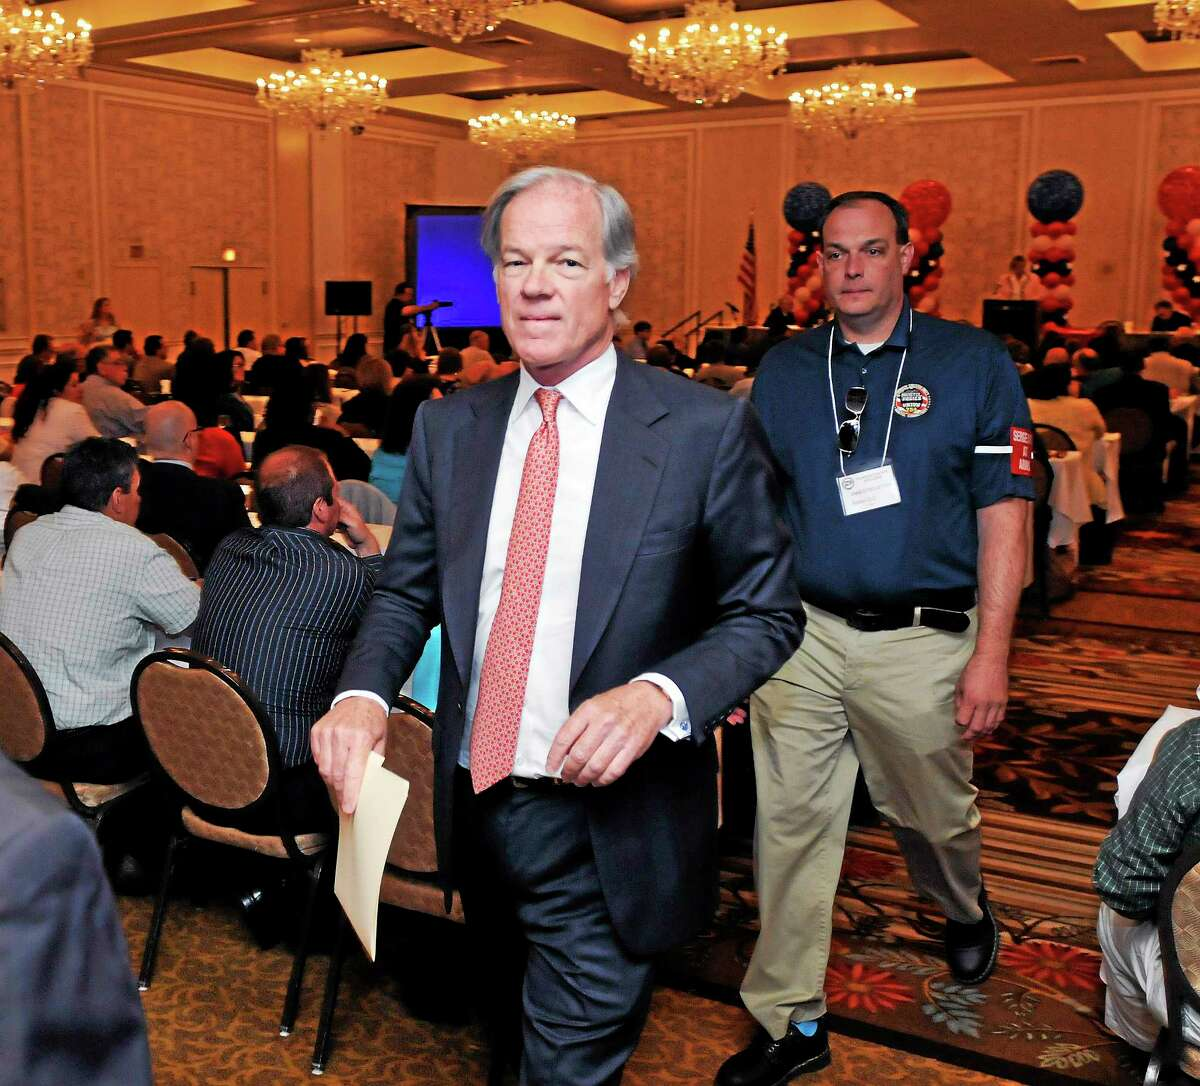 (Peter Casolino-New Haven Register) GOP gubernatorial candidate Thomas Foley leaves the AFL-CIO political convention at the Omni Hotel in New Haven Monday morning after addressing the union. June 16, 2014. pcasolino@newhavenregister.com